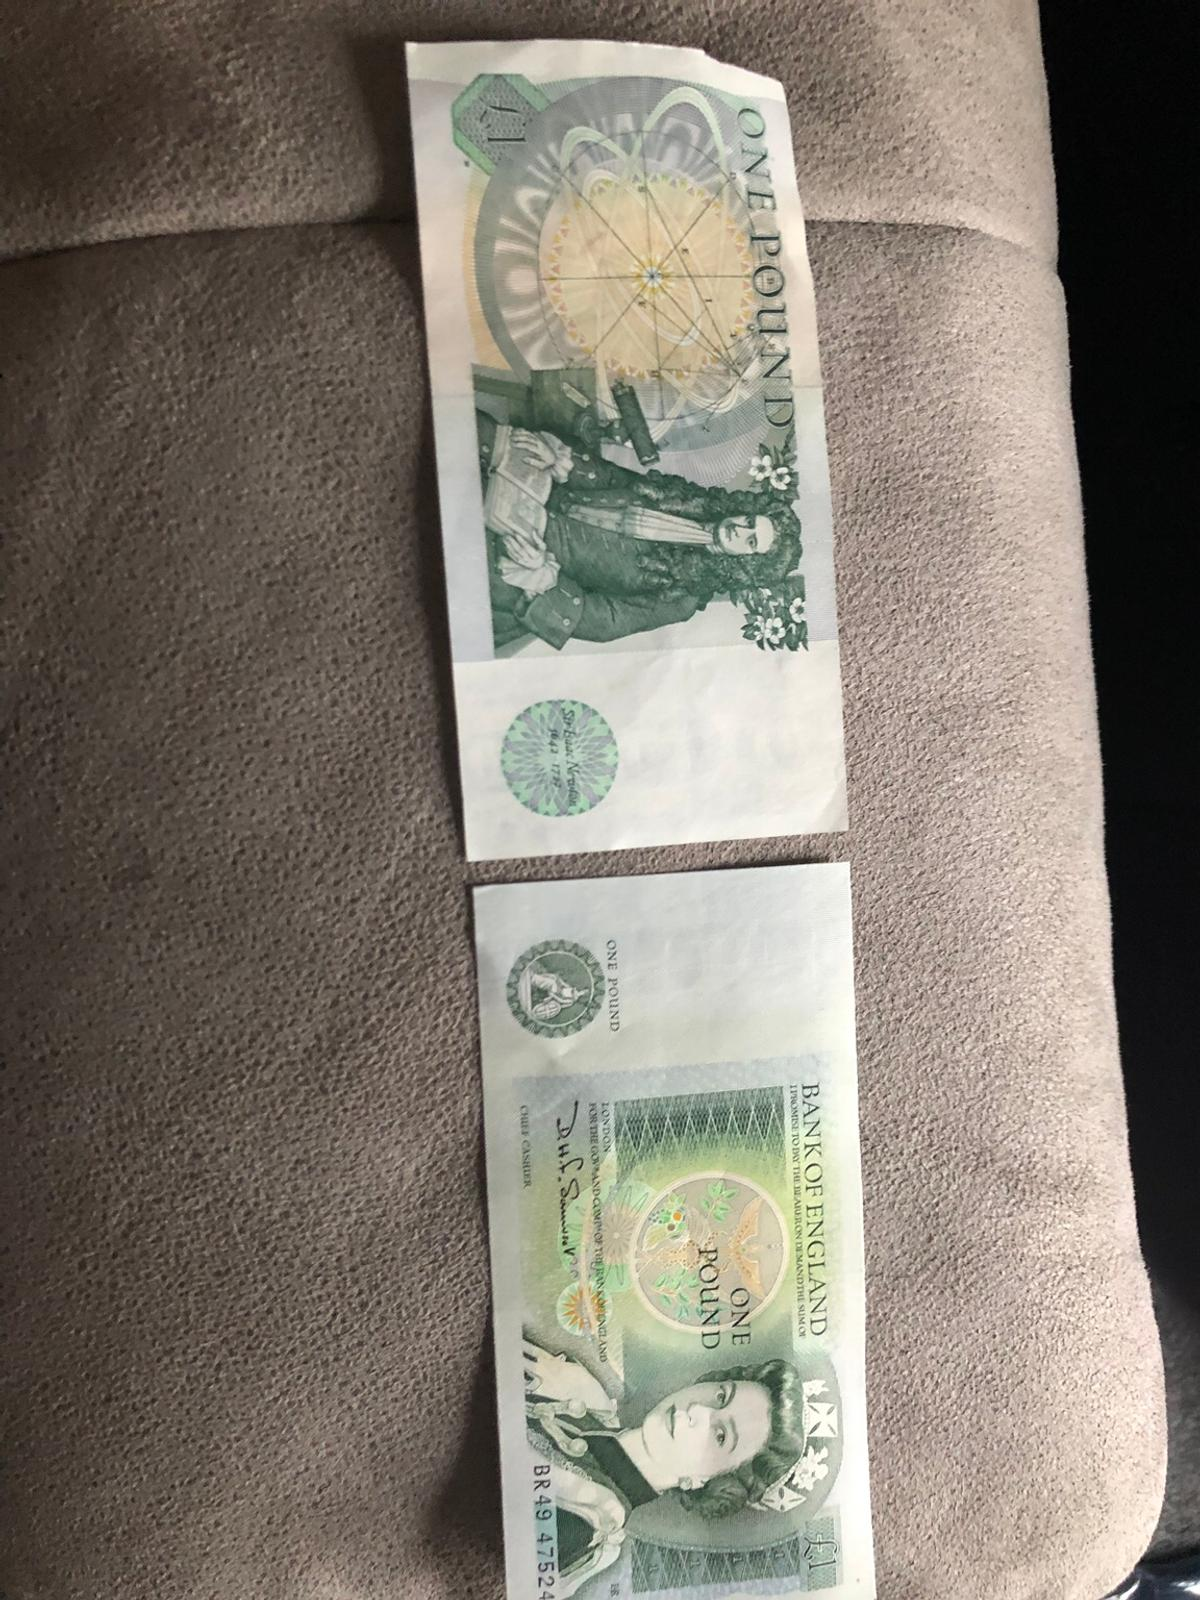 2 old 1978 1 pound notes